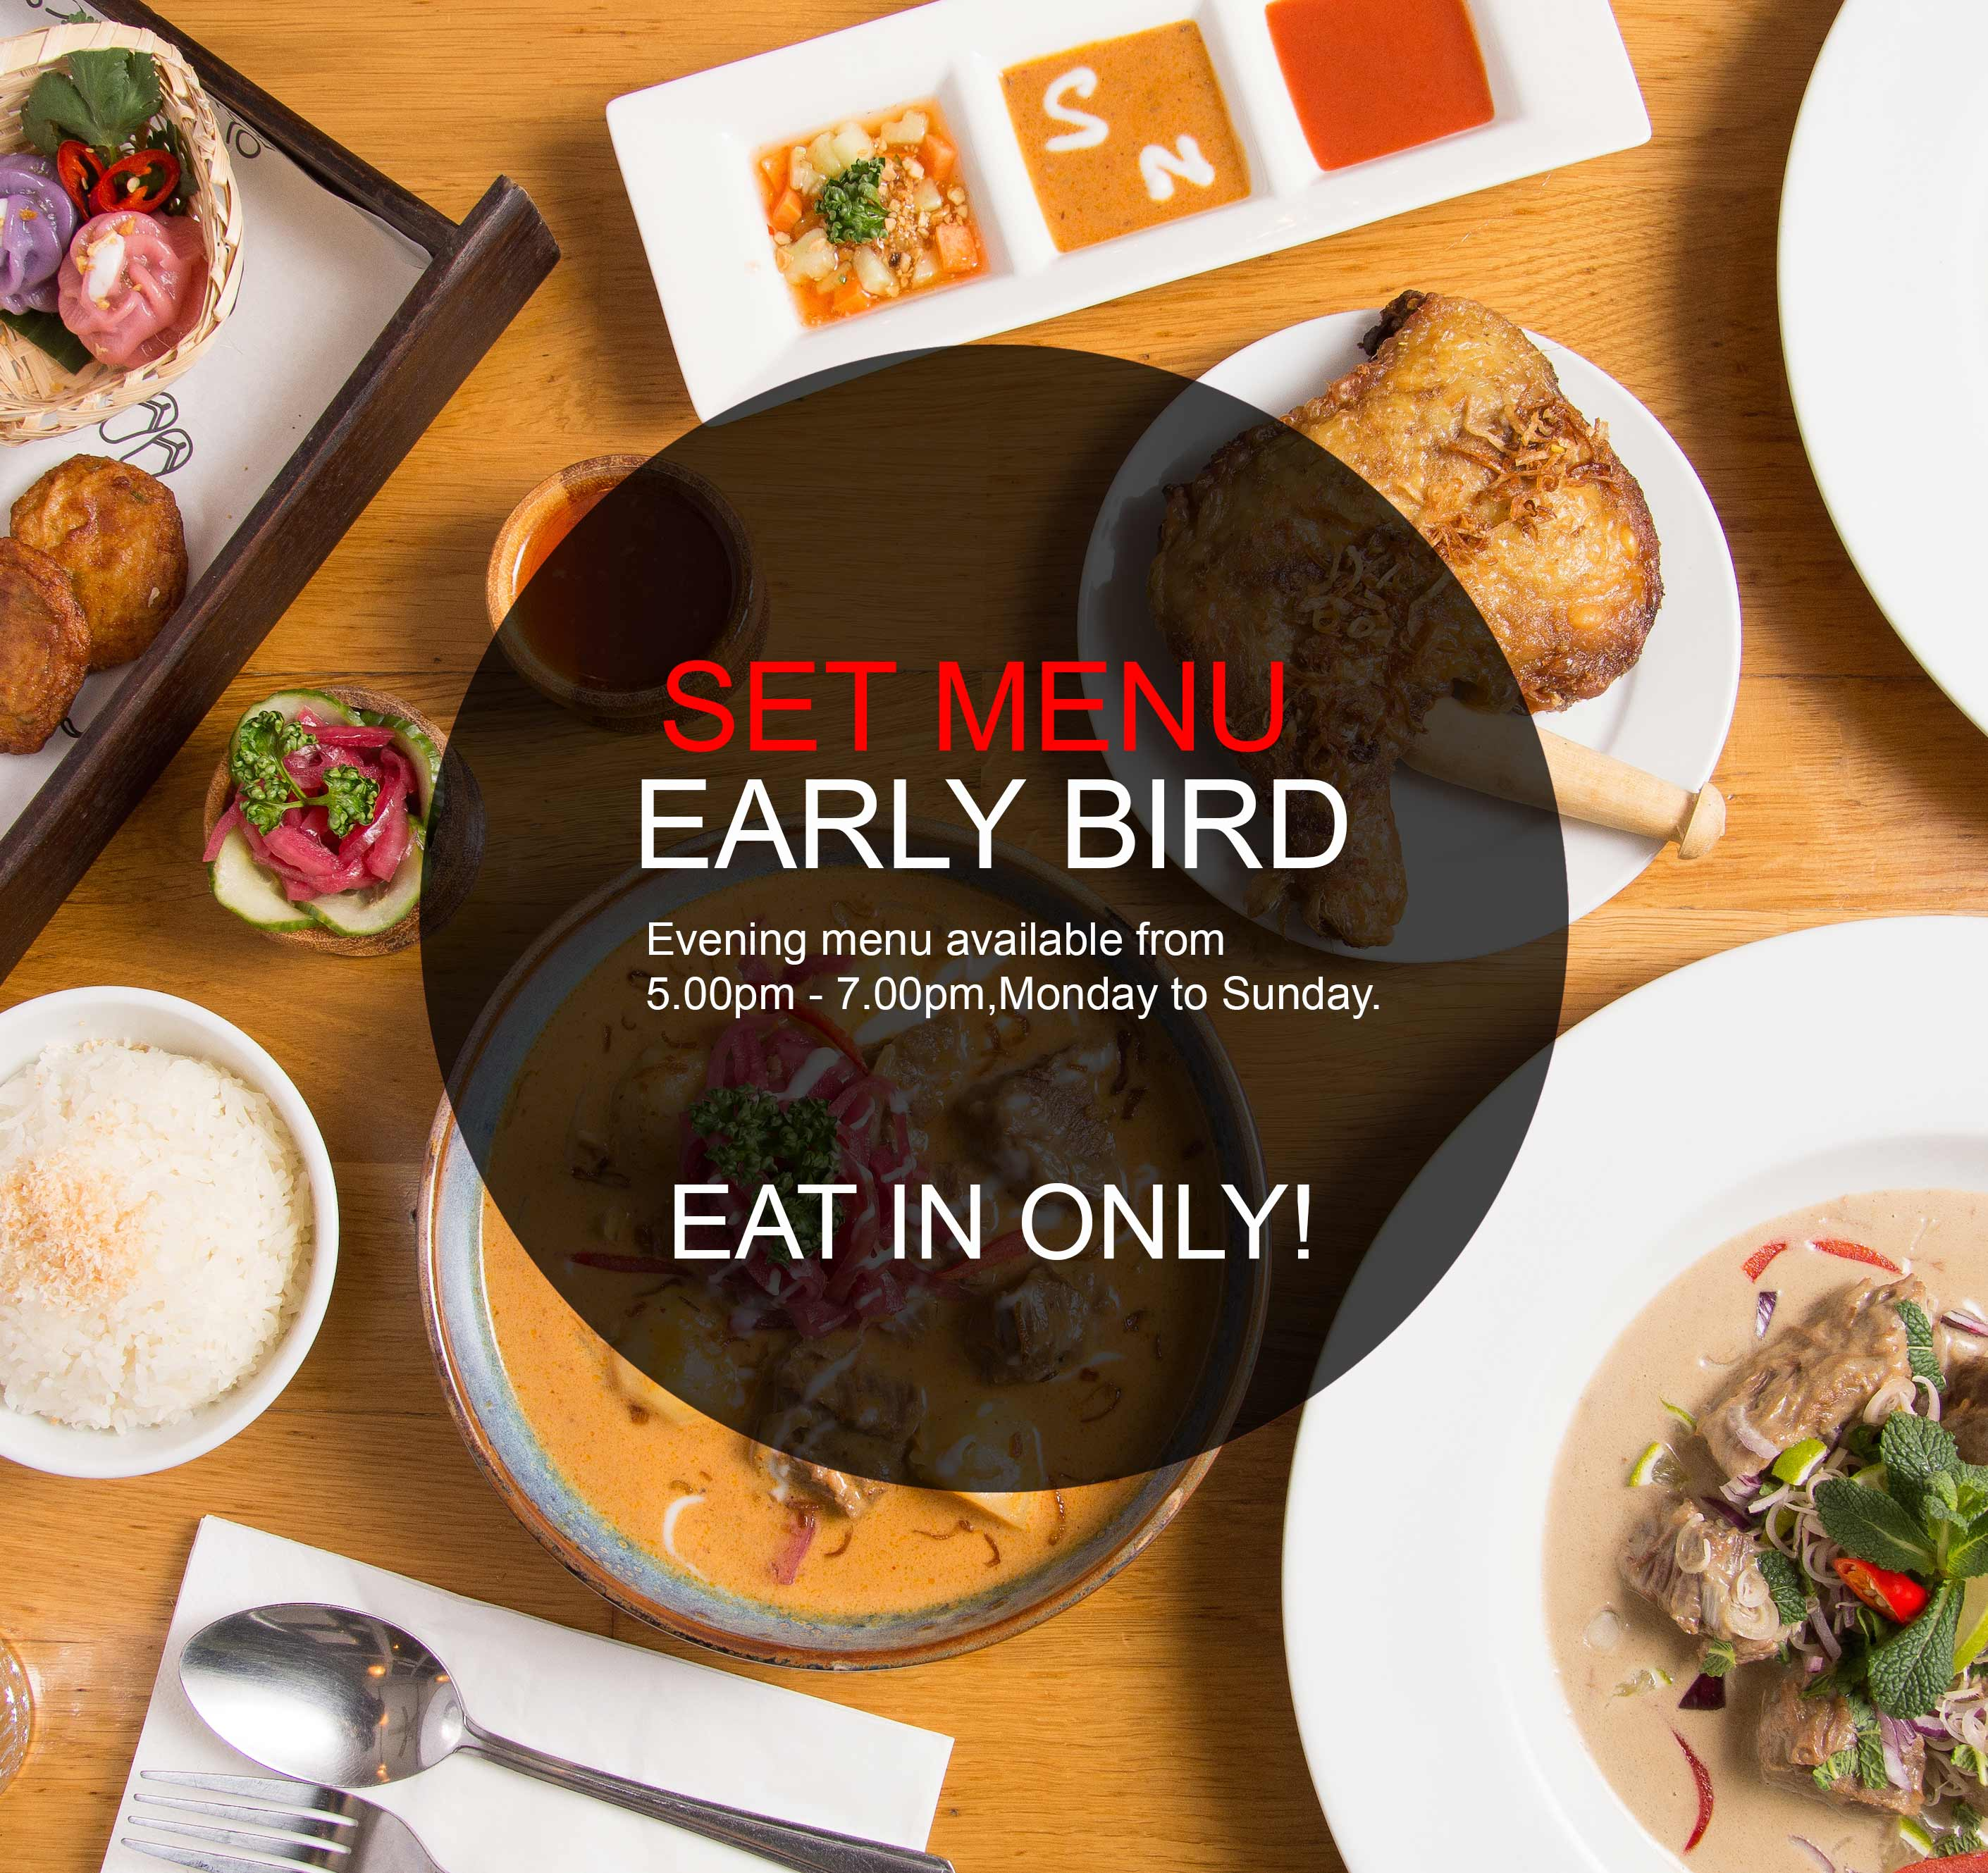 SET MENU EARLY BIRD